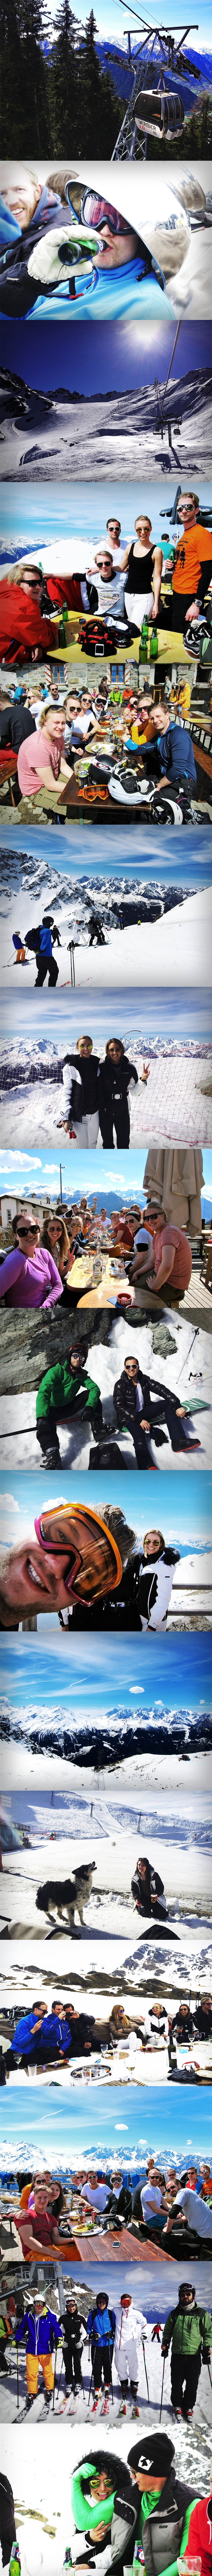 verbier lunch i backen